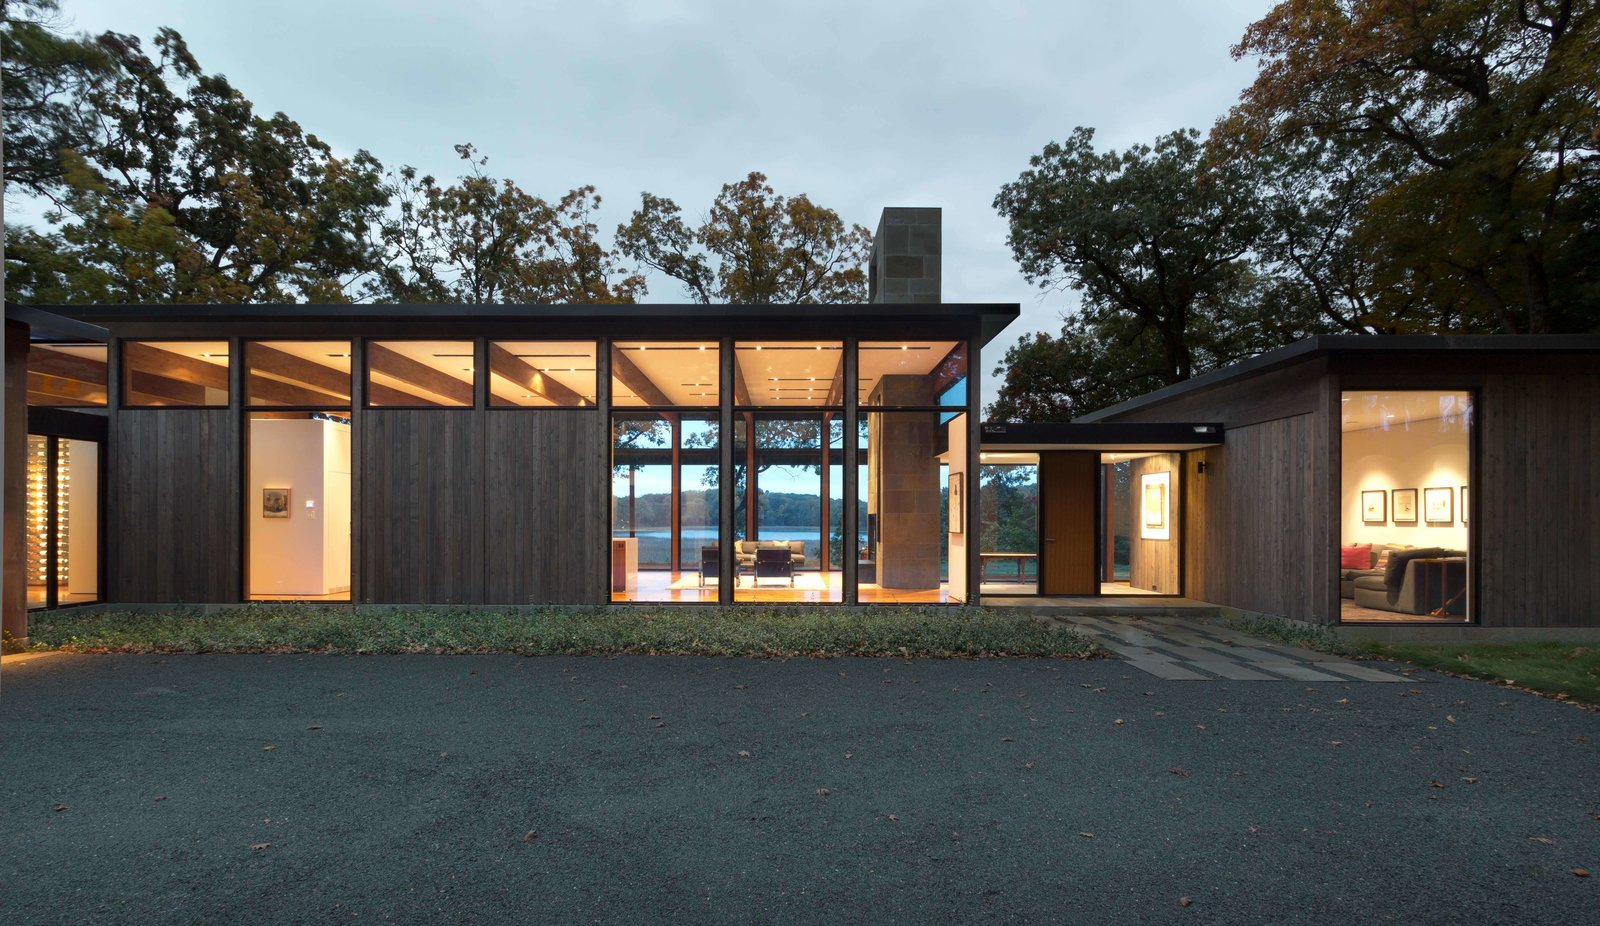 Californian modernism informs the shape of this Minnesota residence.